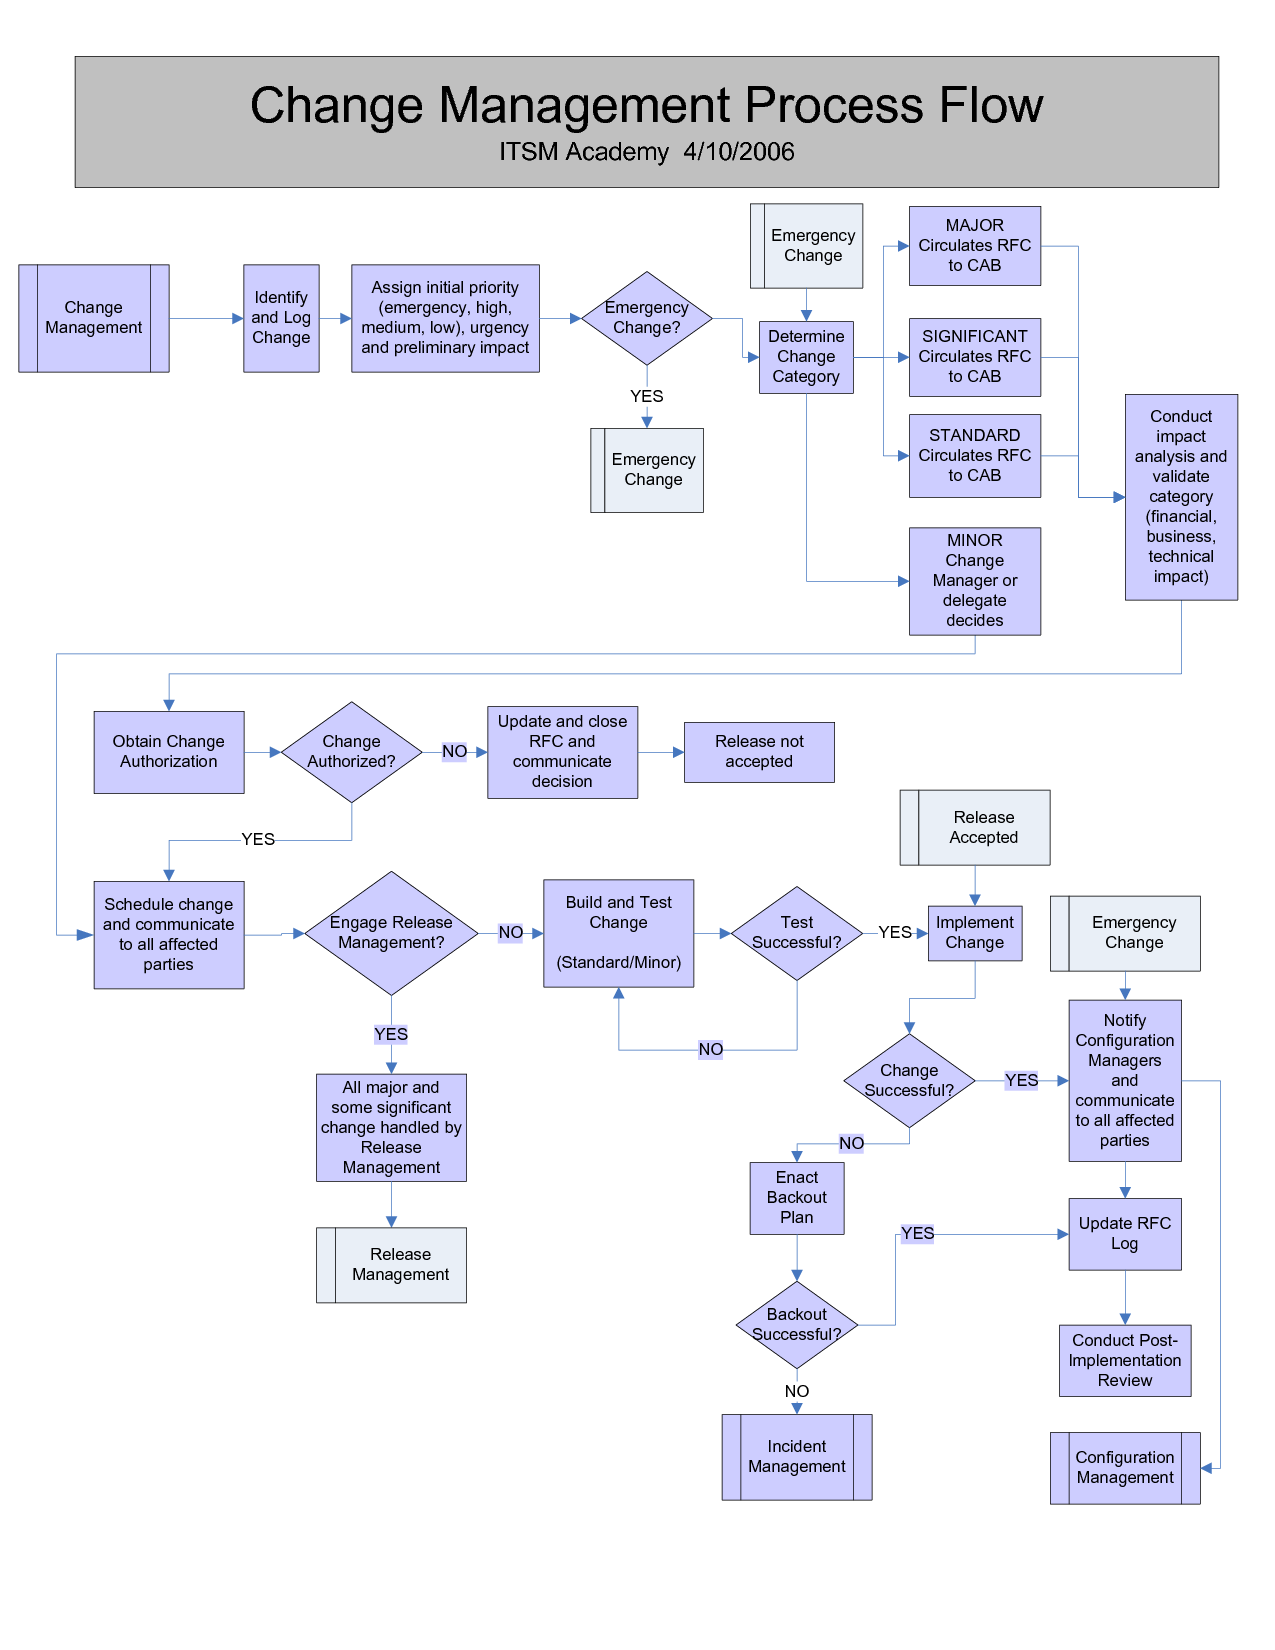 itil incident management process flow diagram change management process flow | change management ... process flow diagram change management